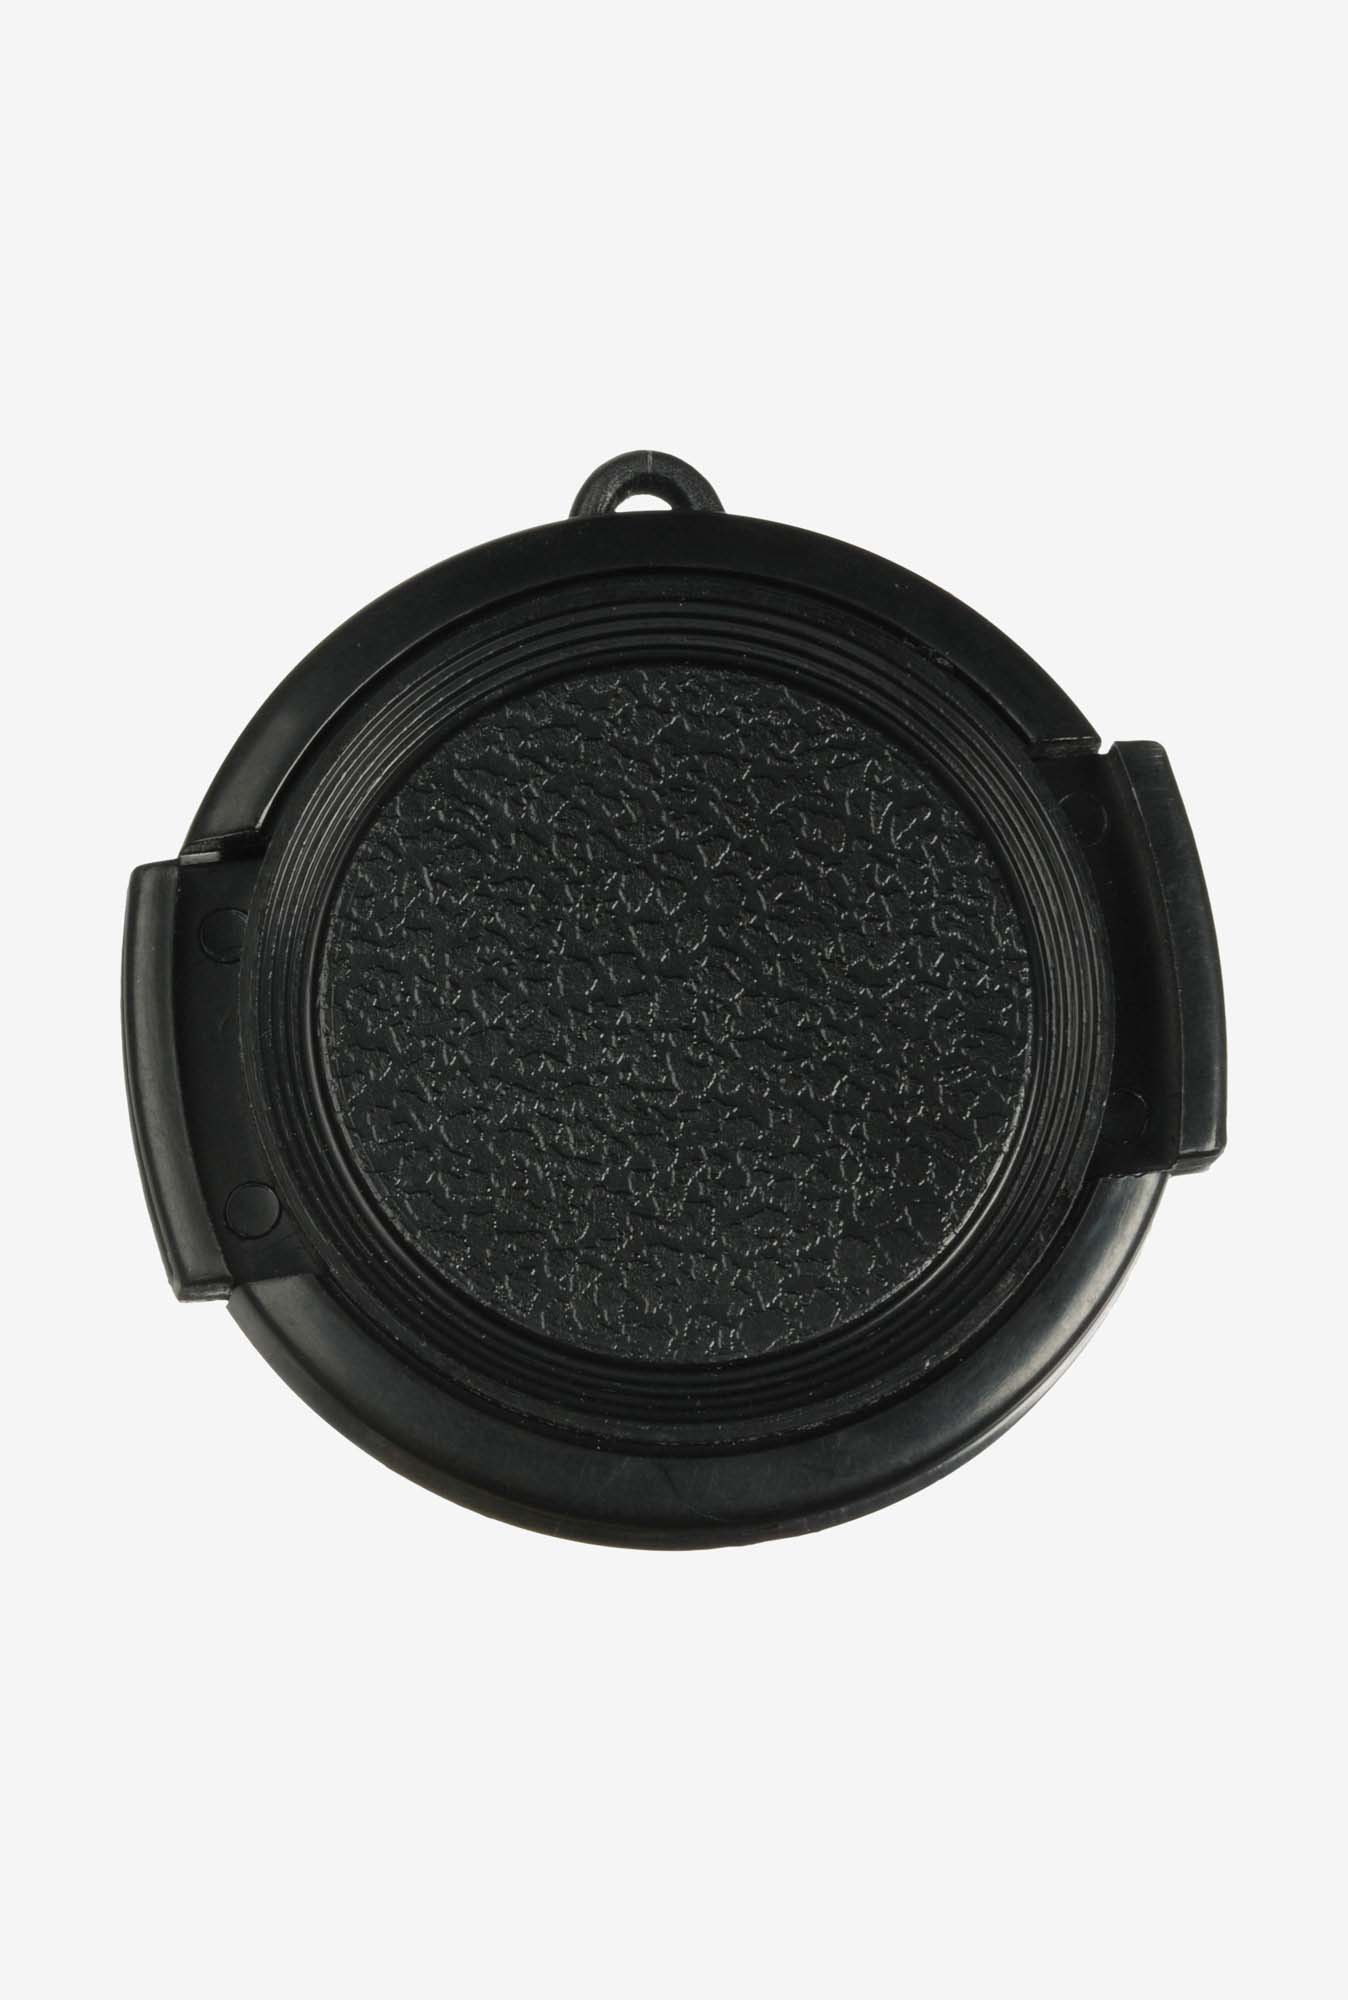 Sensei LCC37 37mm Clip-On Lens Cap (Black)